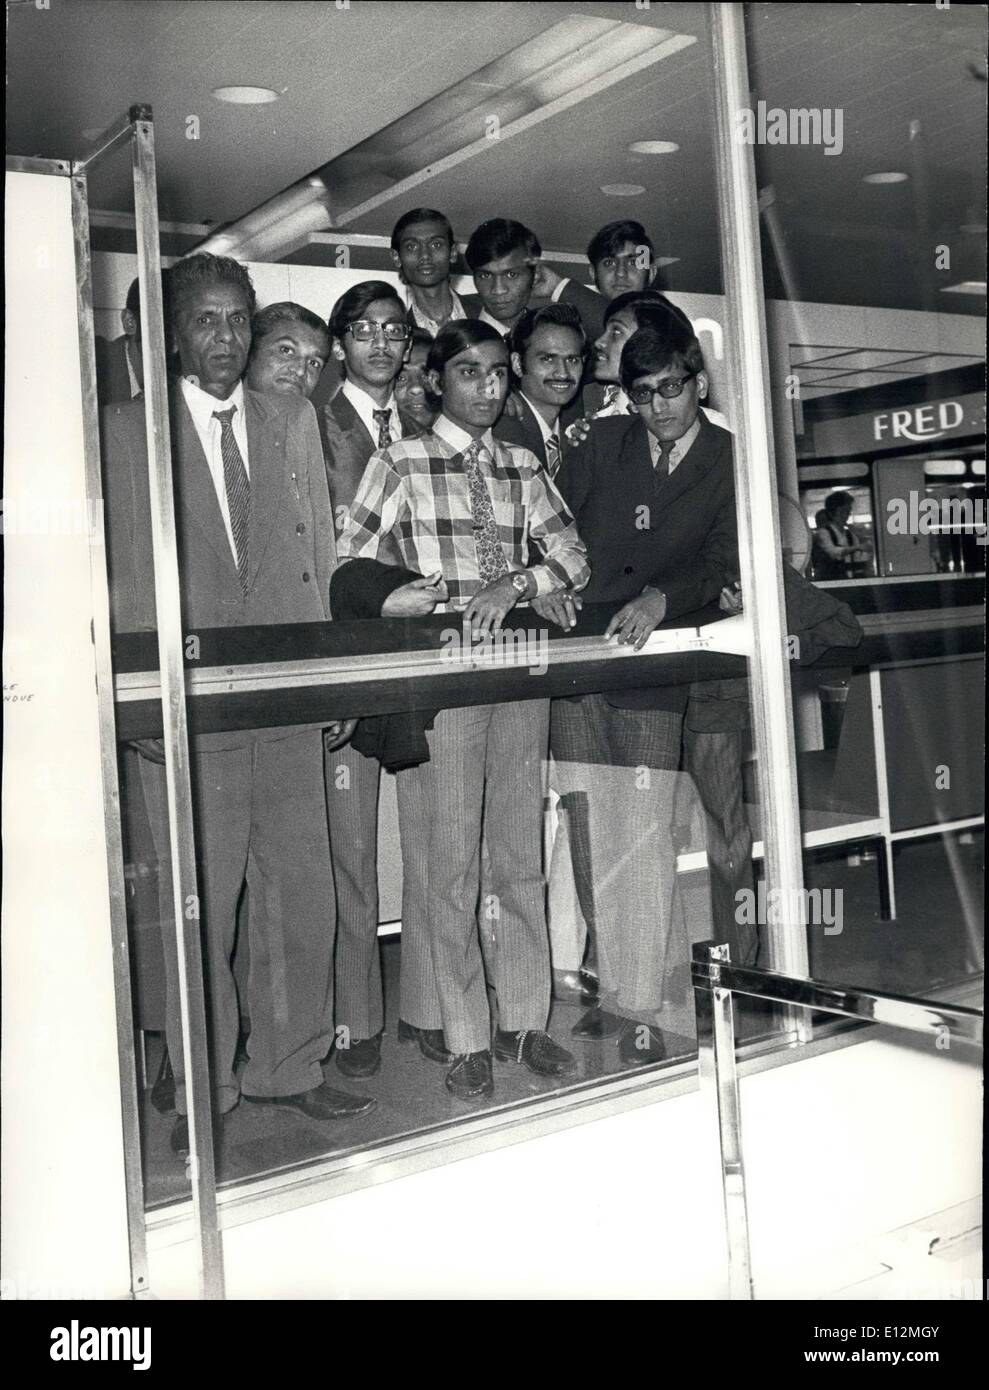 Feb. 24, 2012 - 30 Uganda Indians Blocked at Orly Airport: Over thirty Uganda Indians are waiting at Orly Airport where they arrived on April 12 for permission to enter the United Kingdom. Photo shows Uganda Indian Immigrants pictured at Orly Airport. - Stock Image